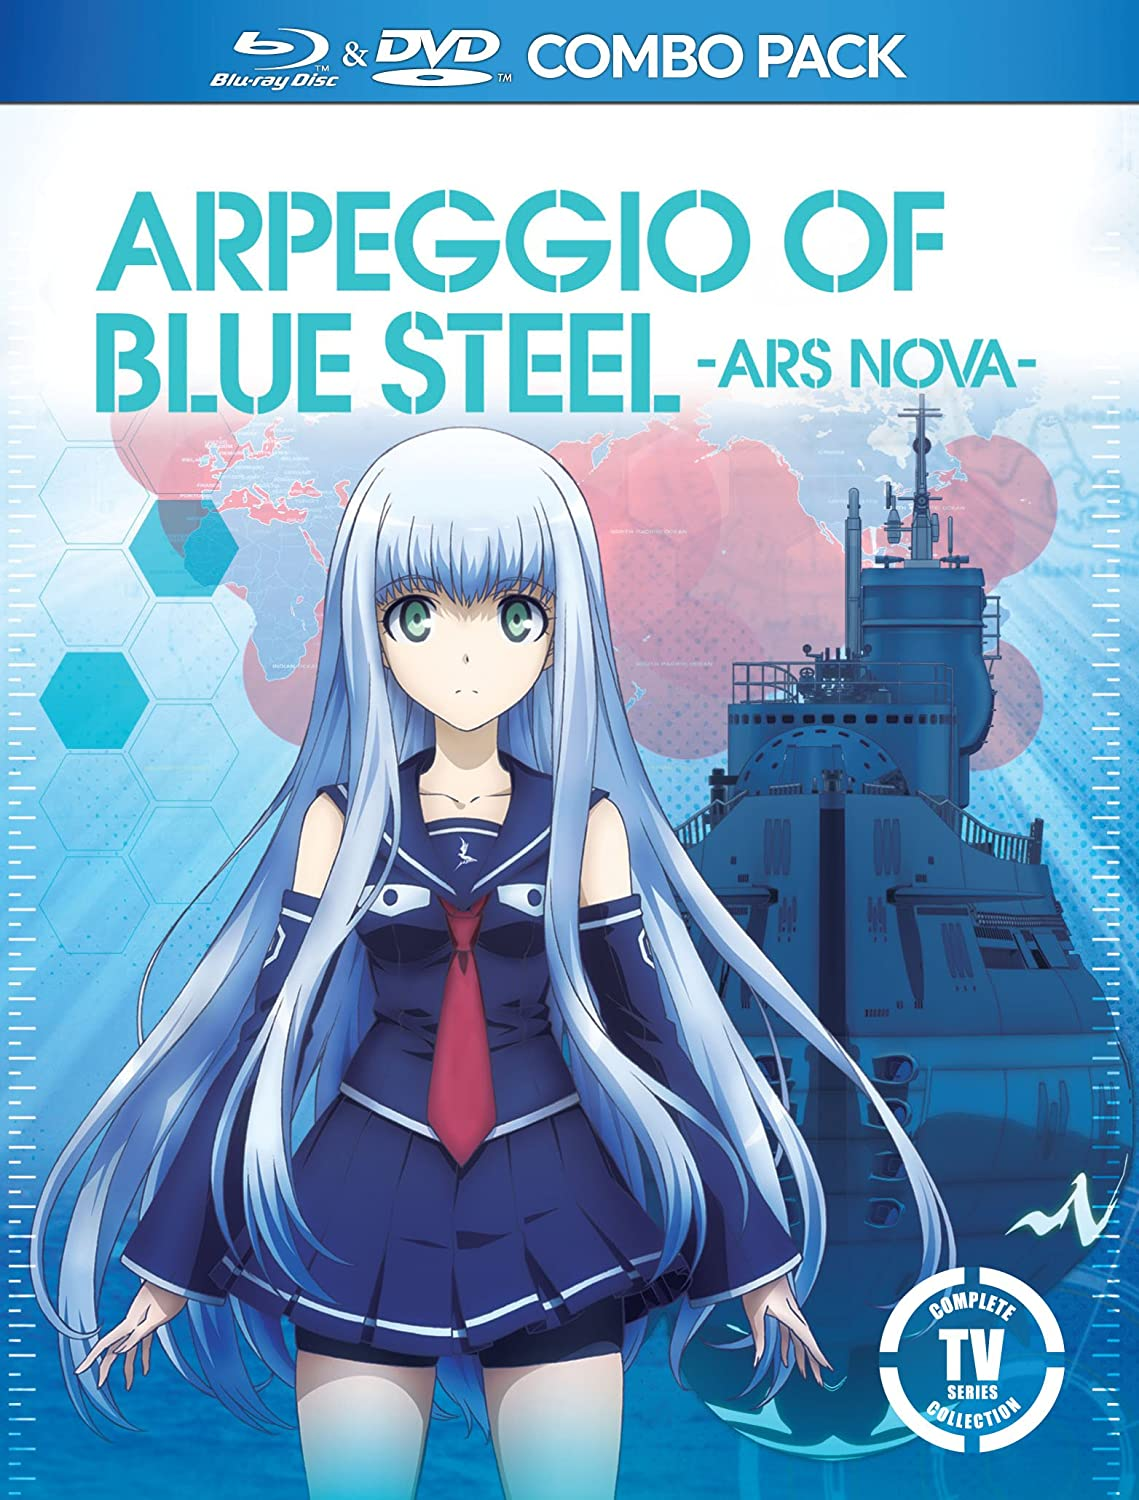 Arpeggio of Blue Steel Blu-ray/DVD (Sub Only)